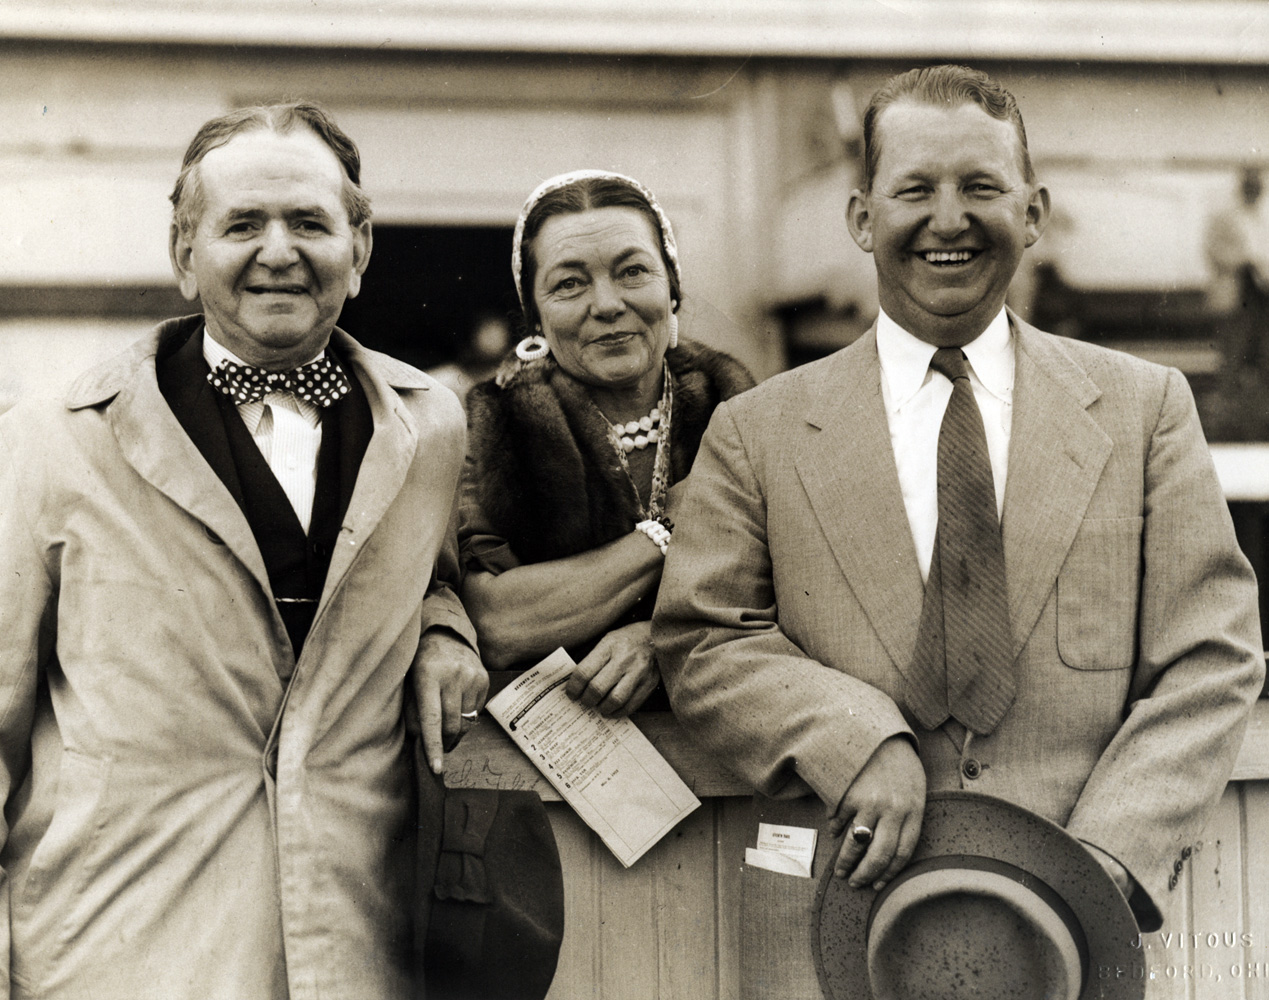 Harry Trotsek (on right) with horse owners Mr. and Mrs. A. E. Reuben at Churchill Downs, May 1953 (Museum Collection)